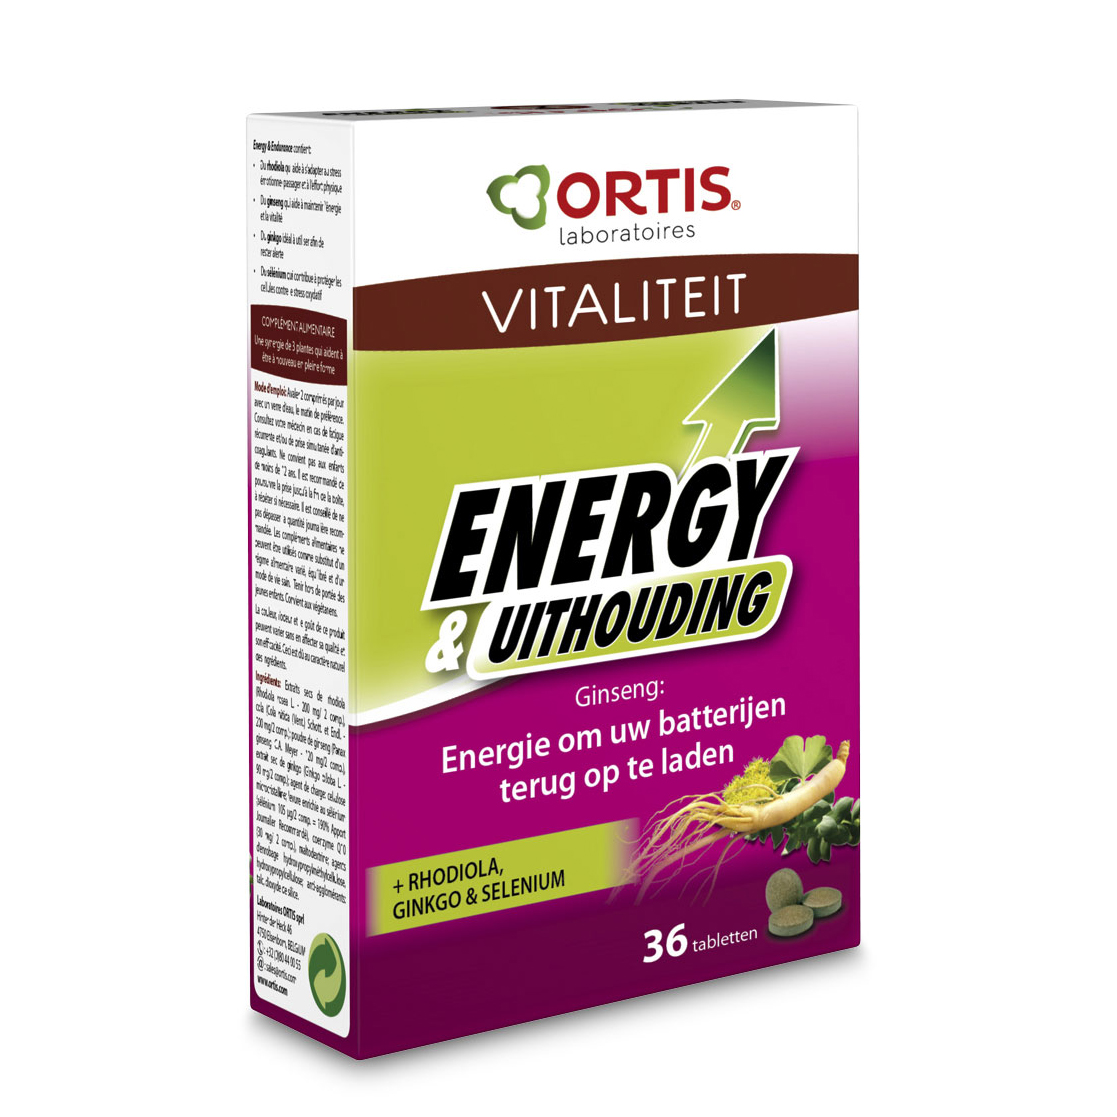 Ortis Energy en uithouding Tabletten